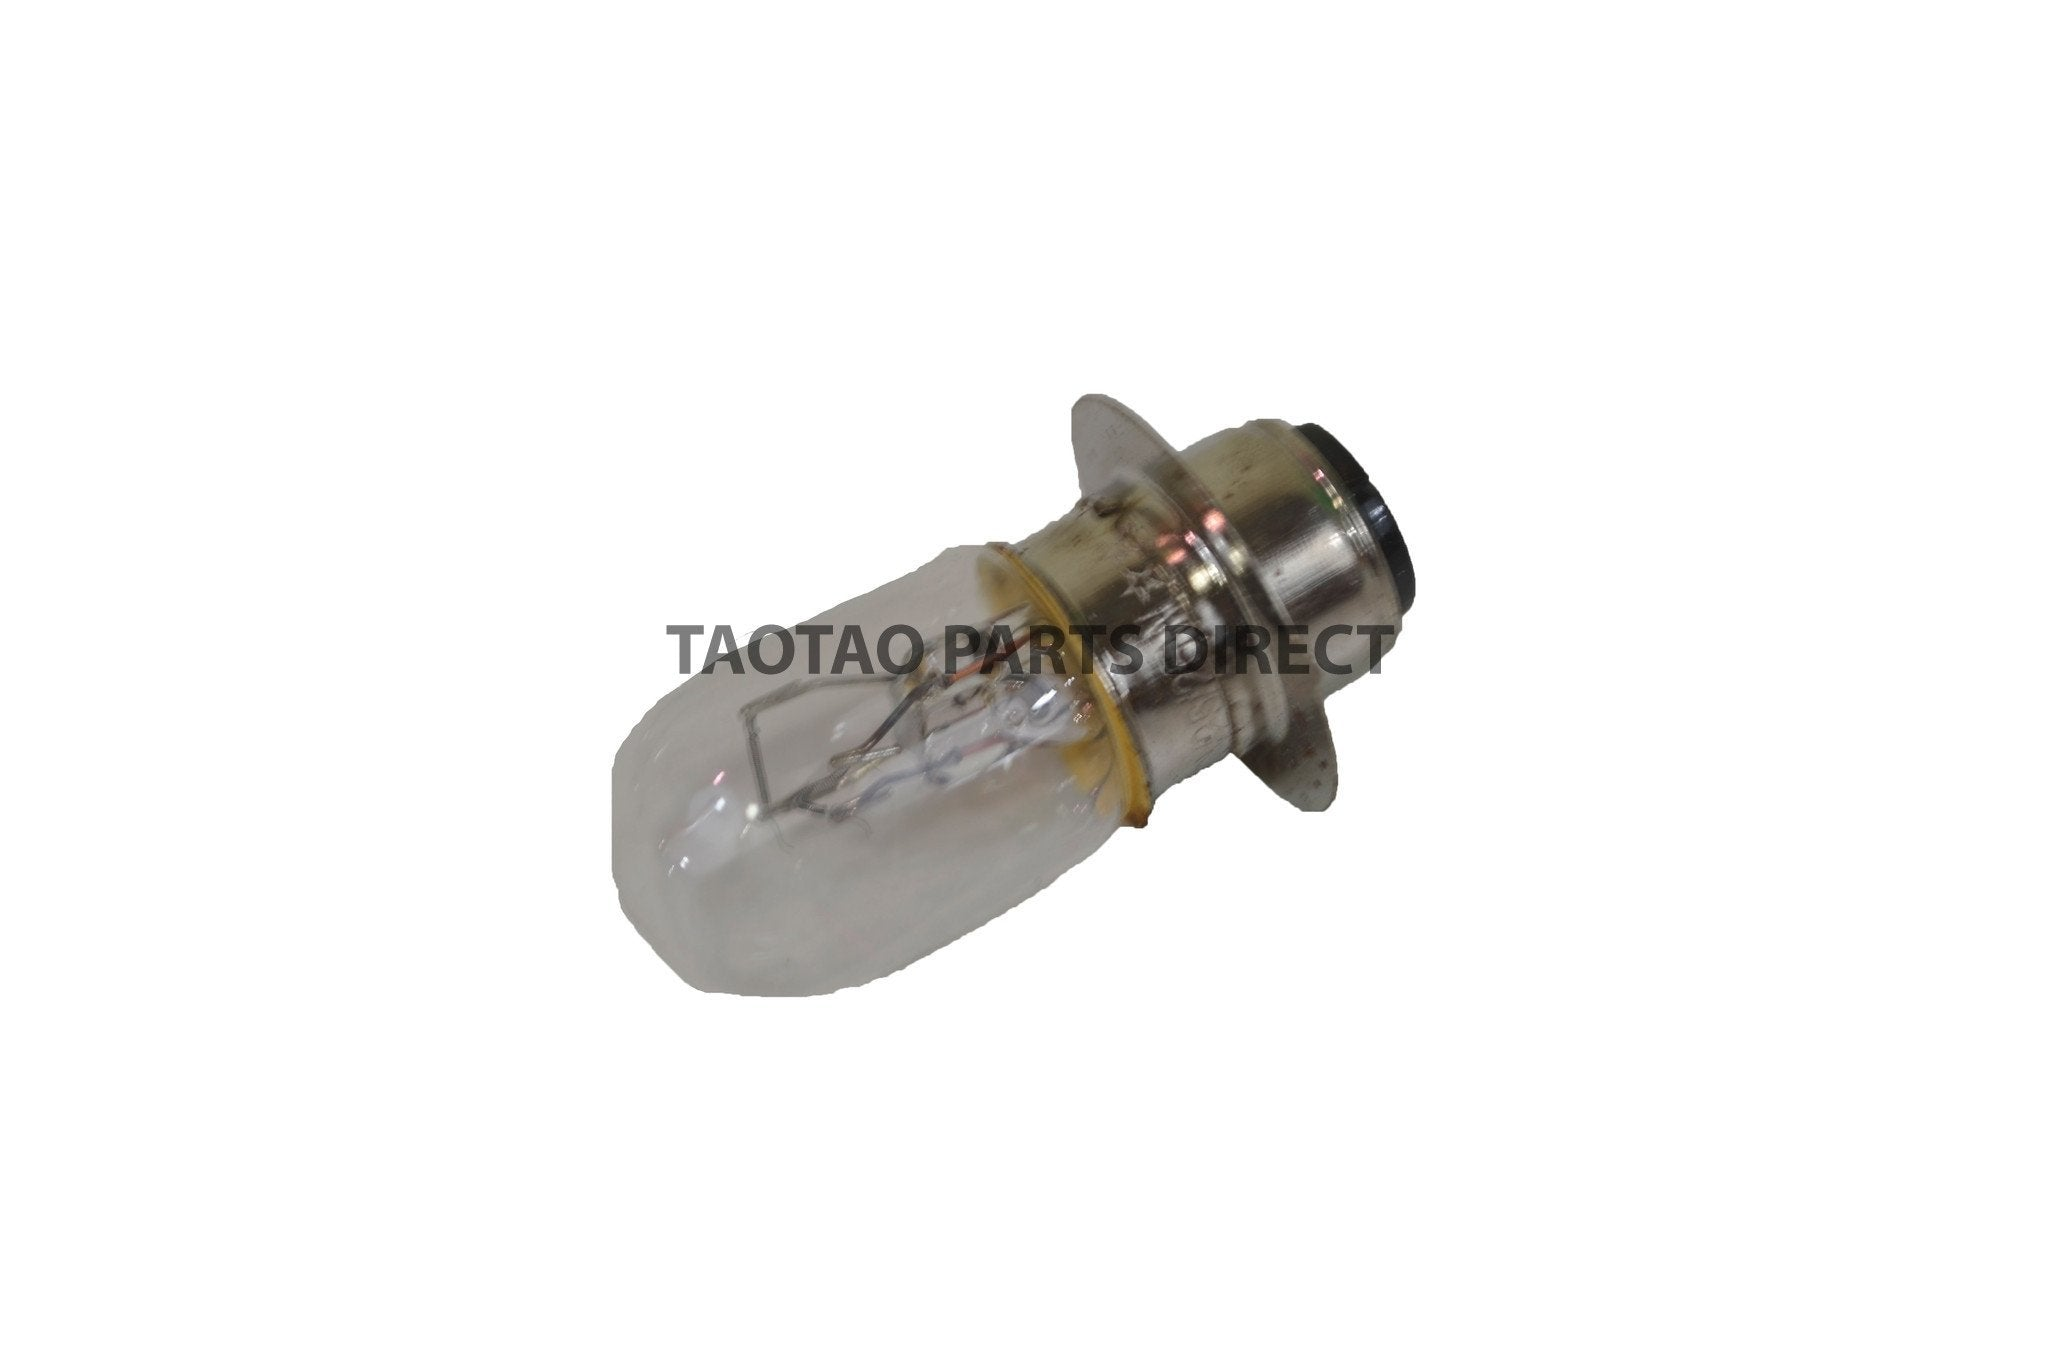 #5 Headlight Bulb - TaoTaoPartsDirect.com